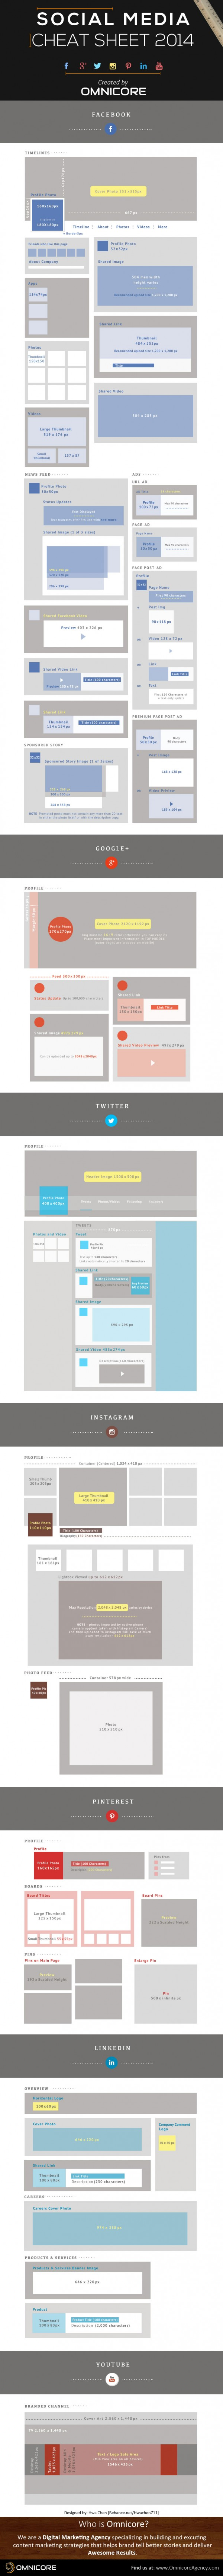 Social-Media-Design-Cheat-Sheet-Infographic